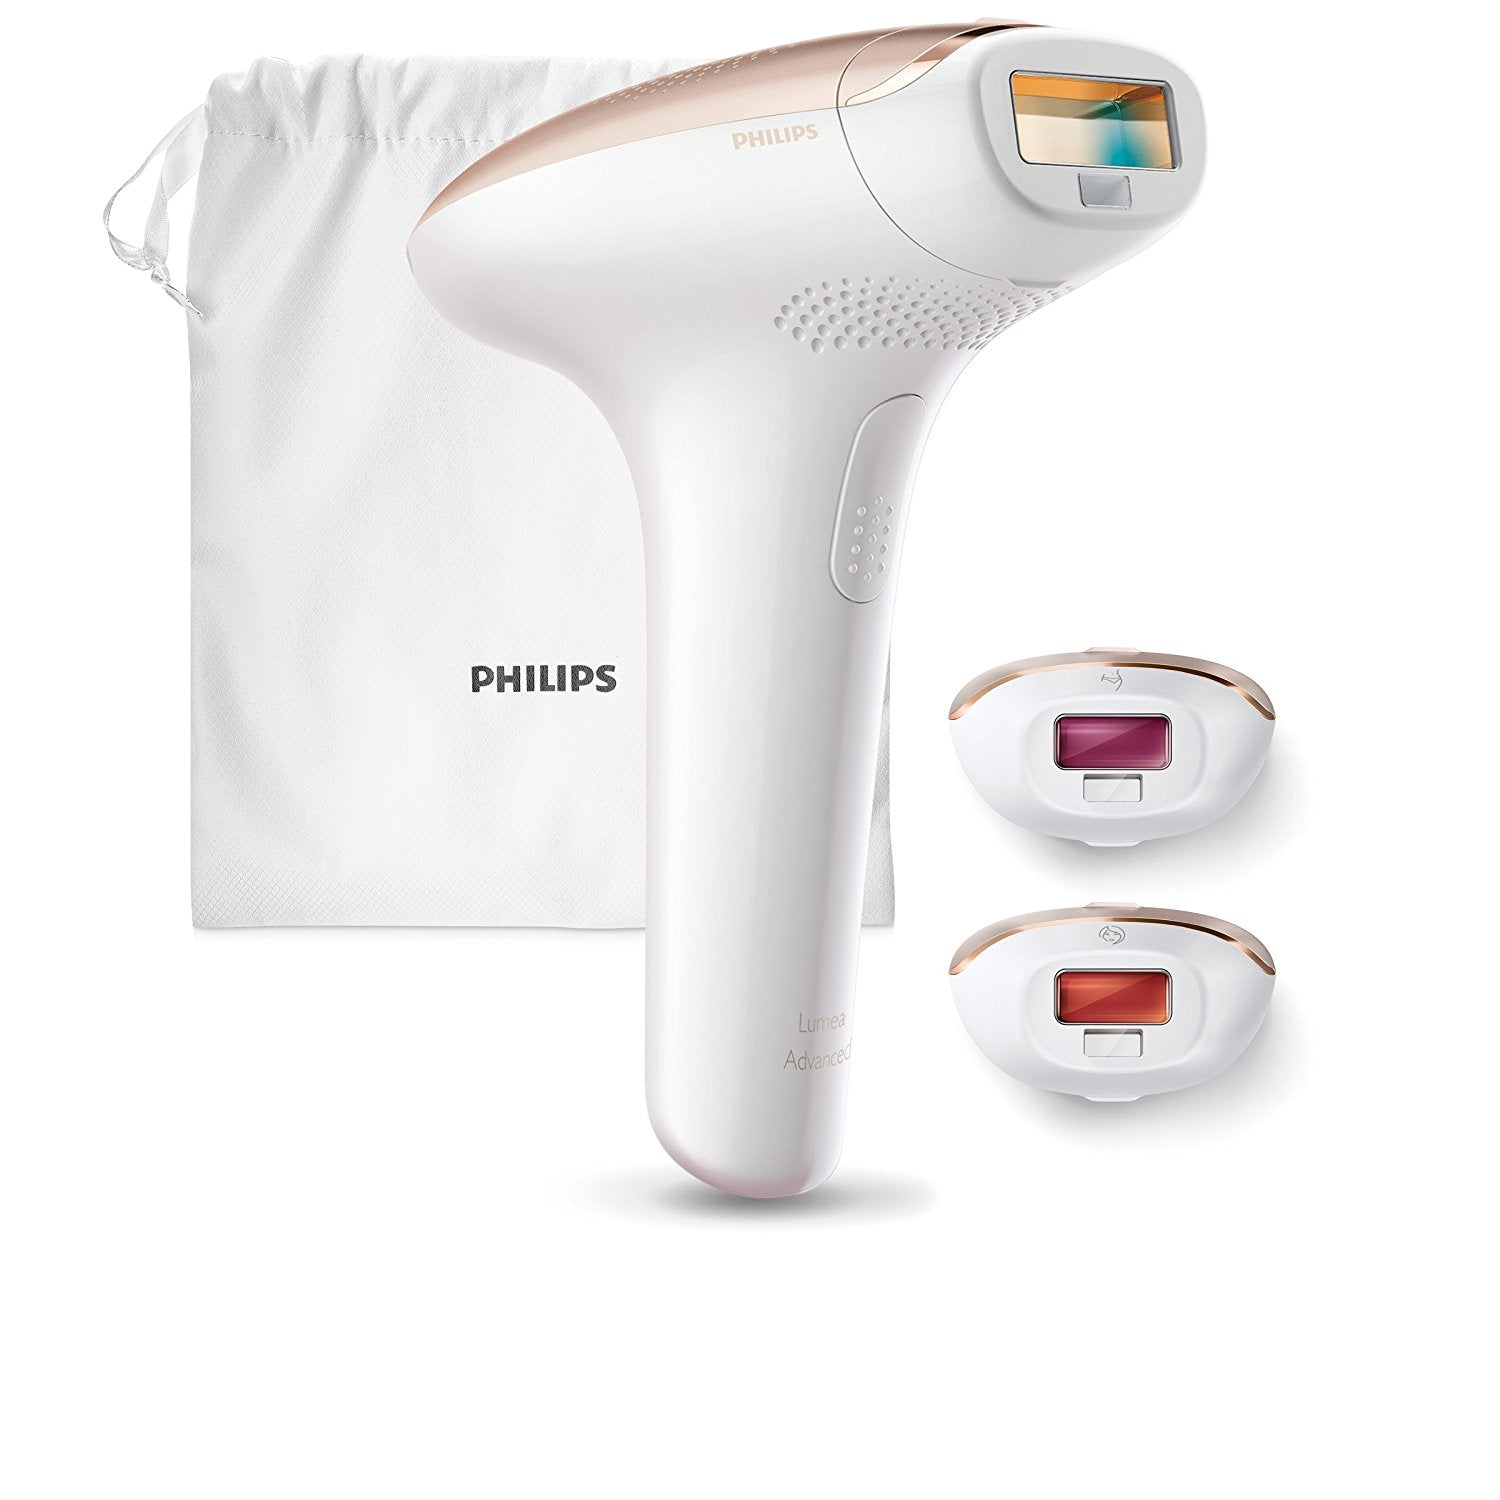 Philips Lumea SC1999/00 Advanced IPL Hair Removal Device for Face, Body & Bikini